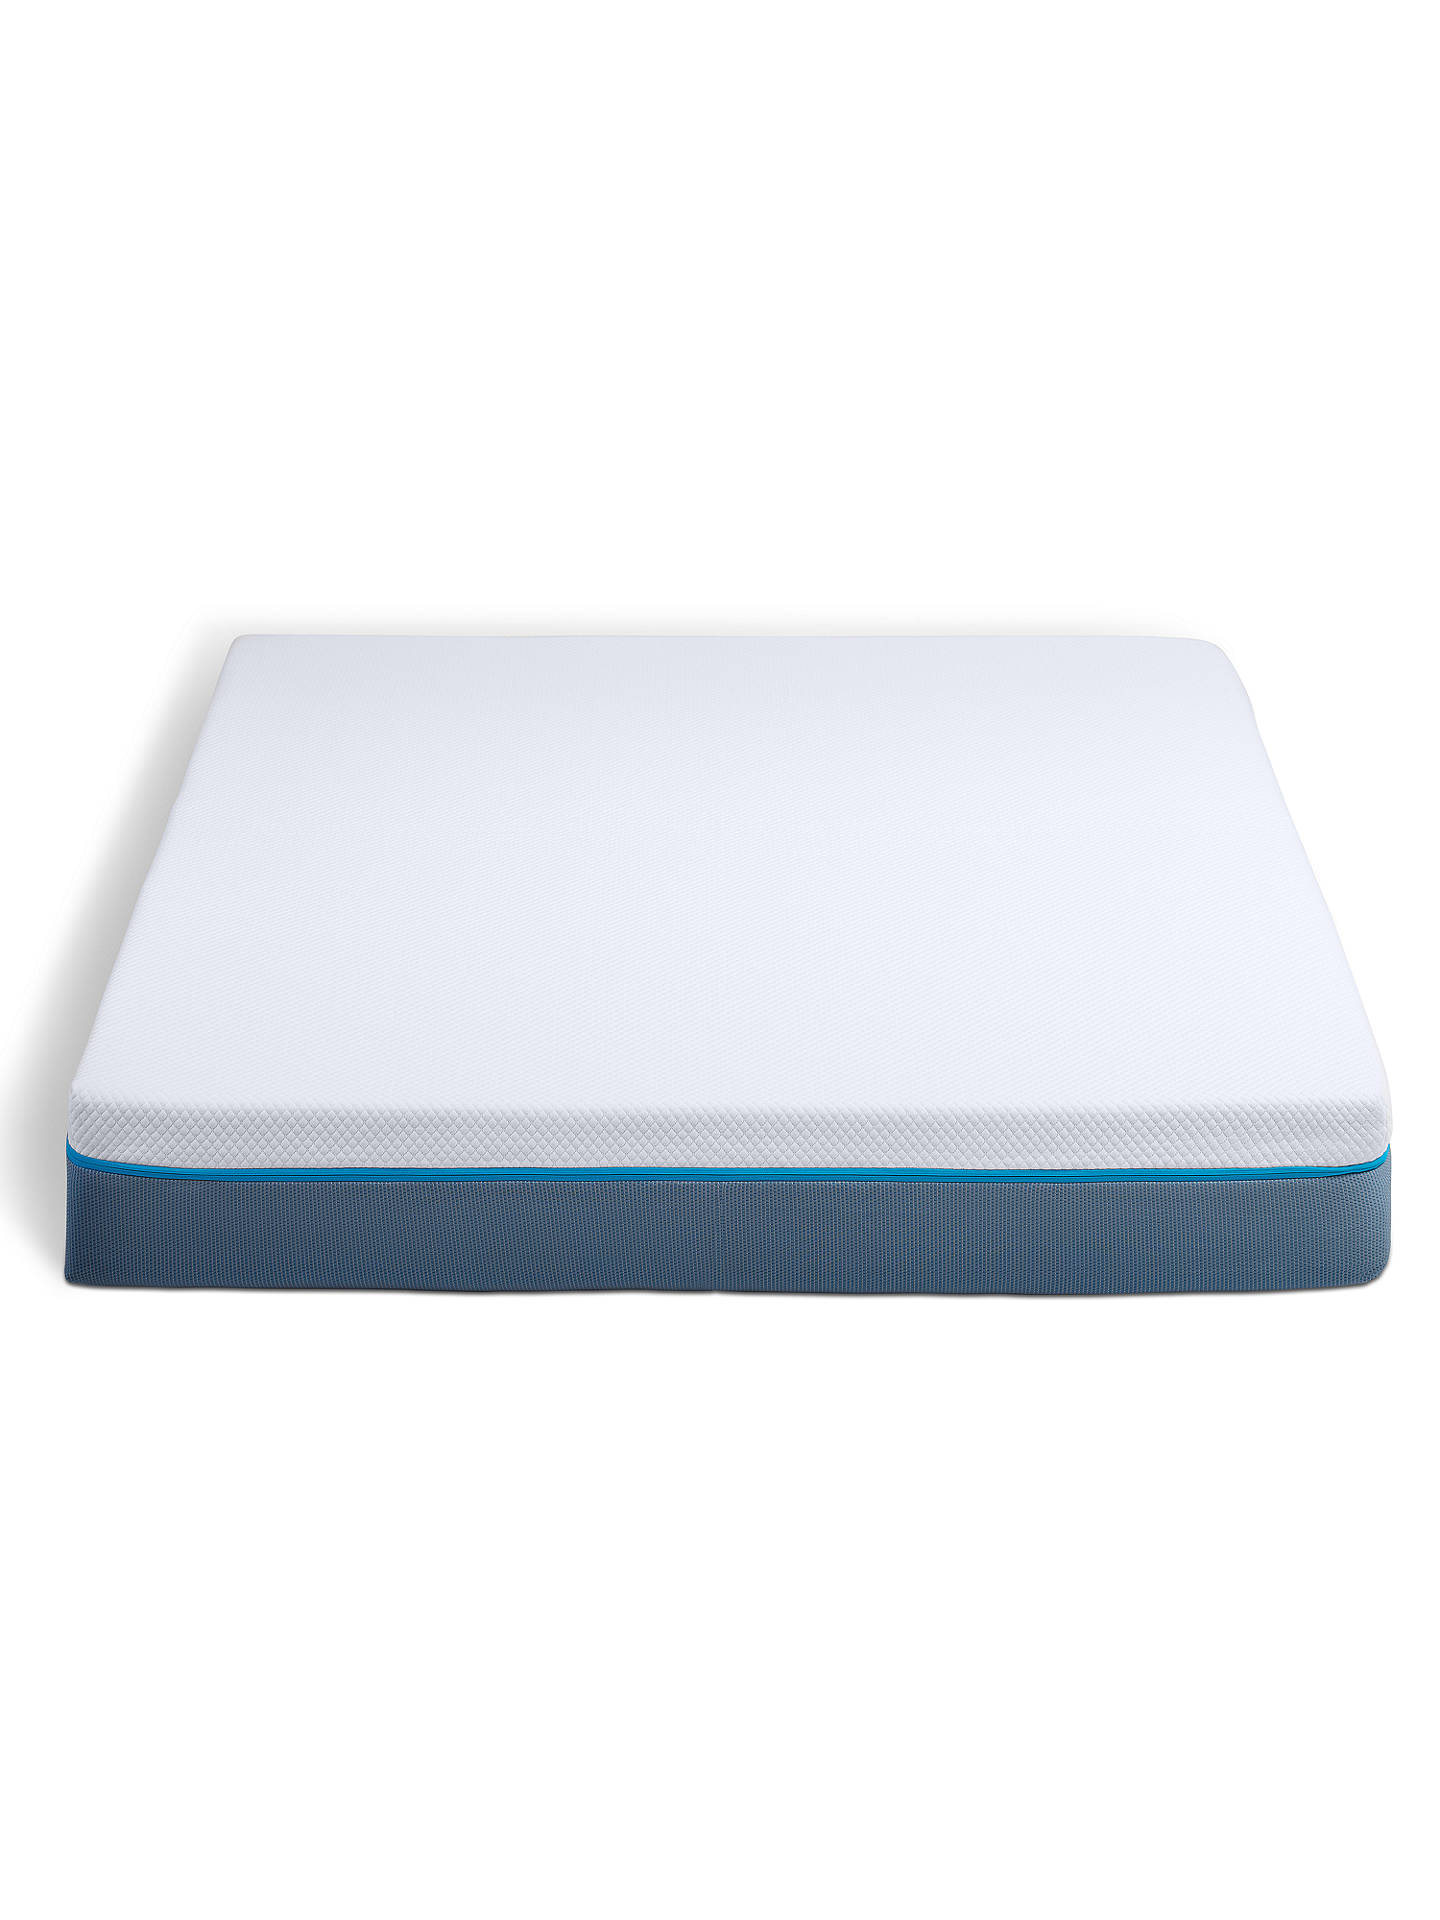 Buy SIMBA Hybrid® Memory Foam Pocket Spring Mattress, Medium Tension, King Size Online at johnlewis.com